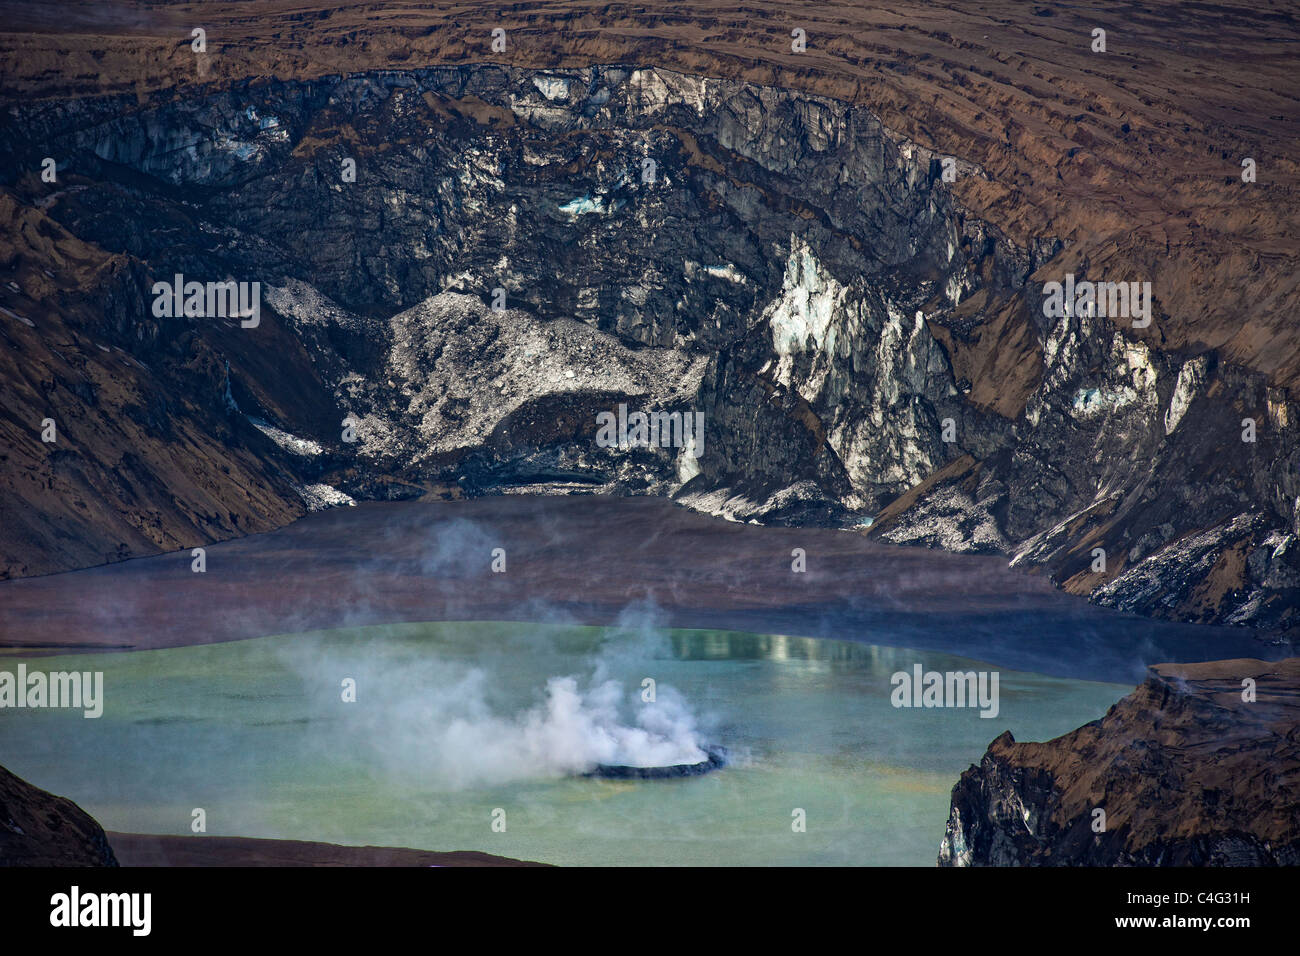 Grimsvotn crater steaming in lake, Grimsvotn volcanic eruption, Iceland - Stock Image